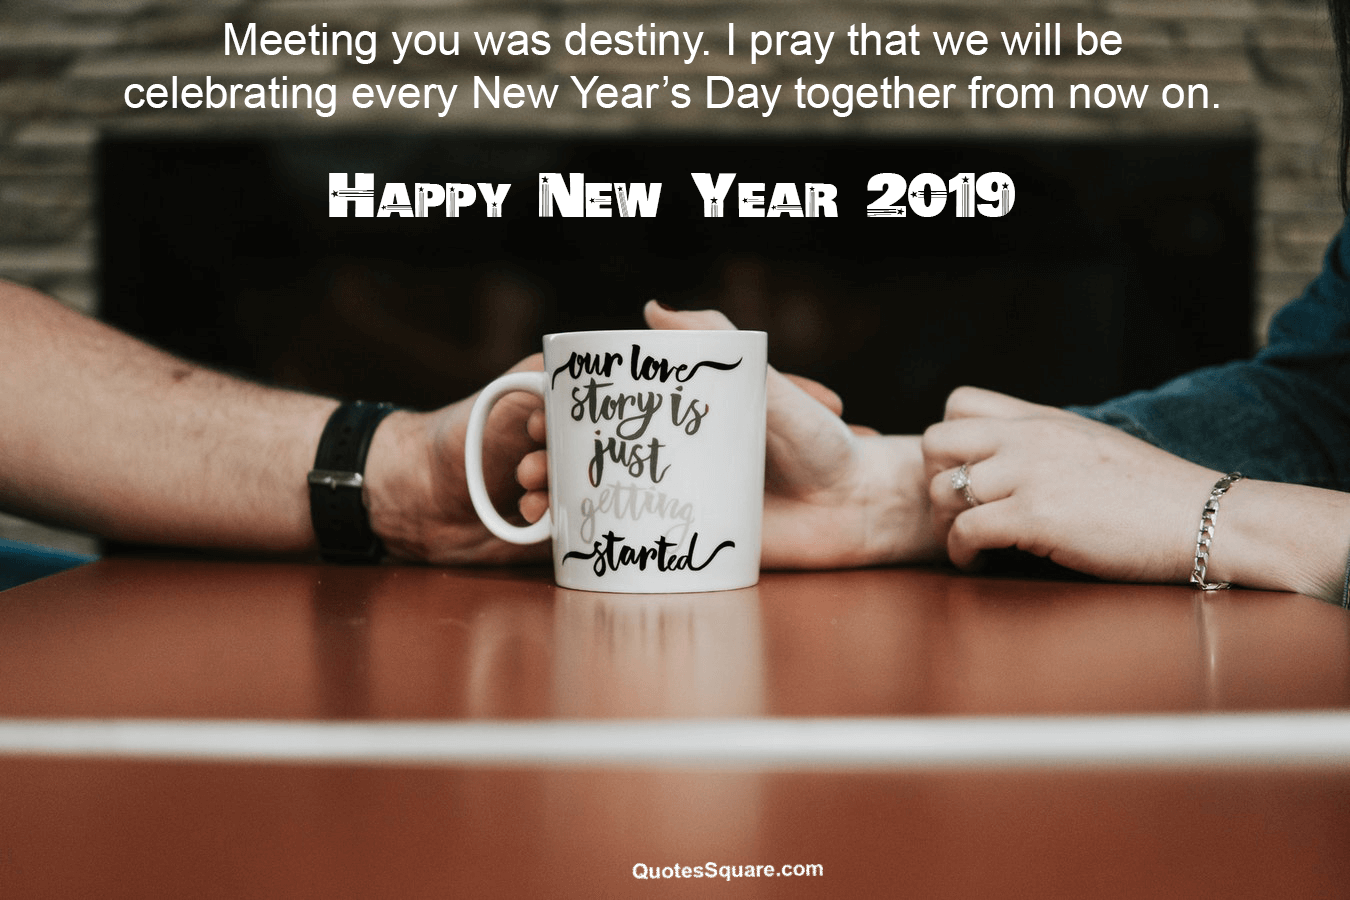 new year 2019 wishes